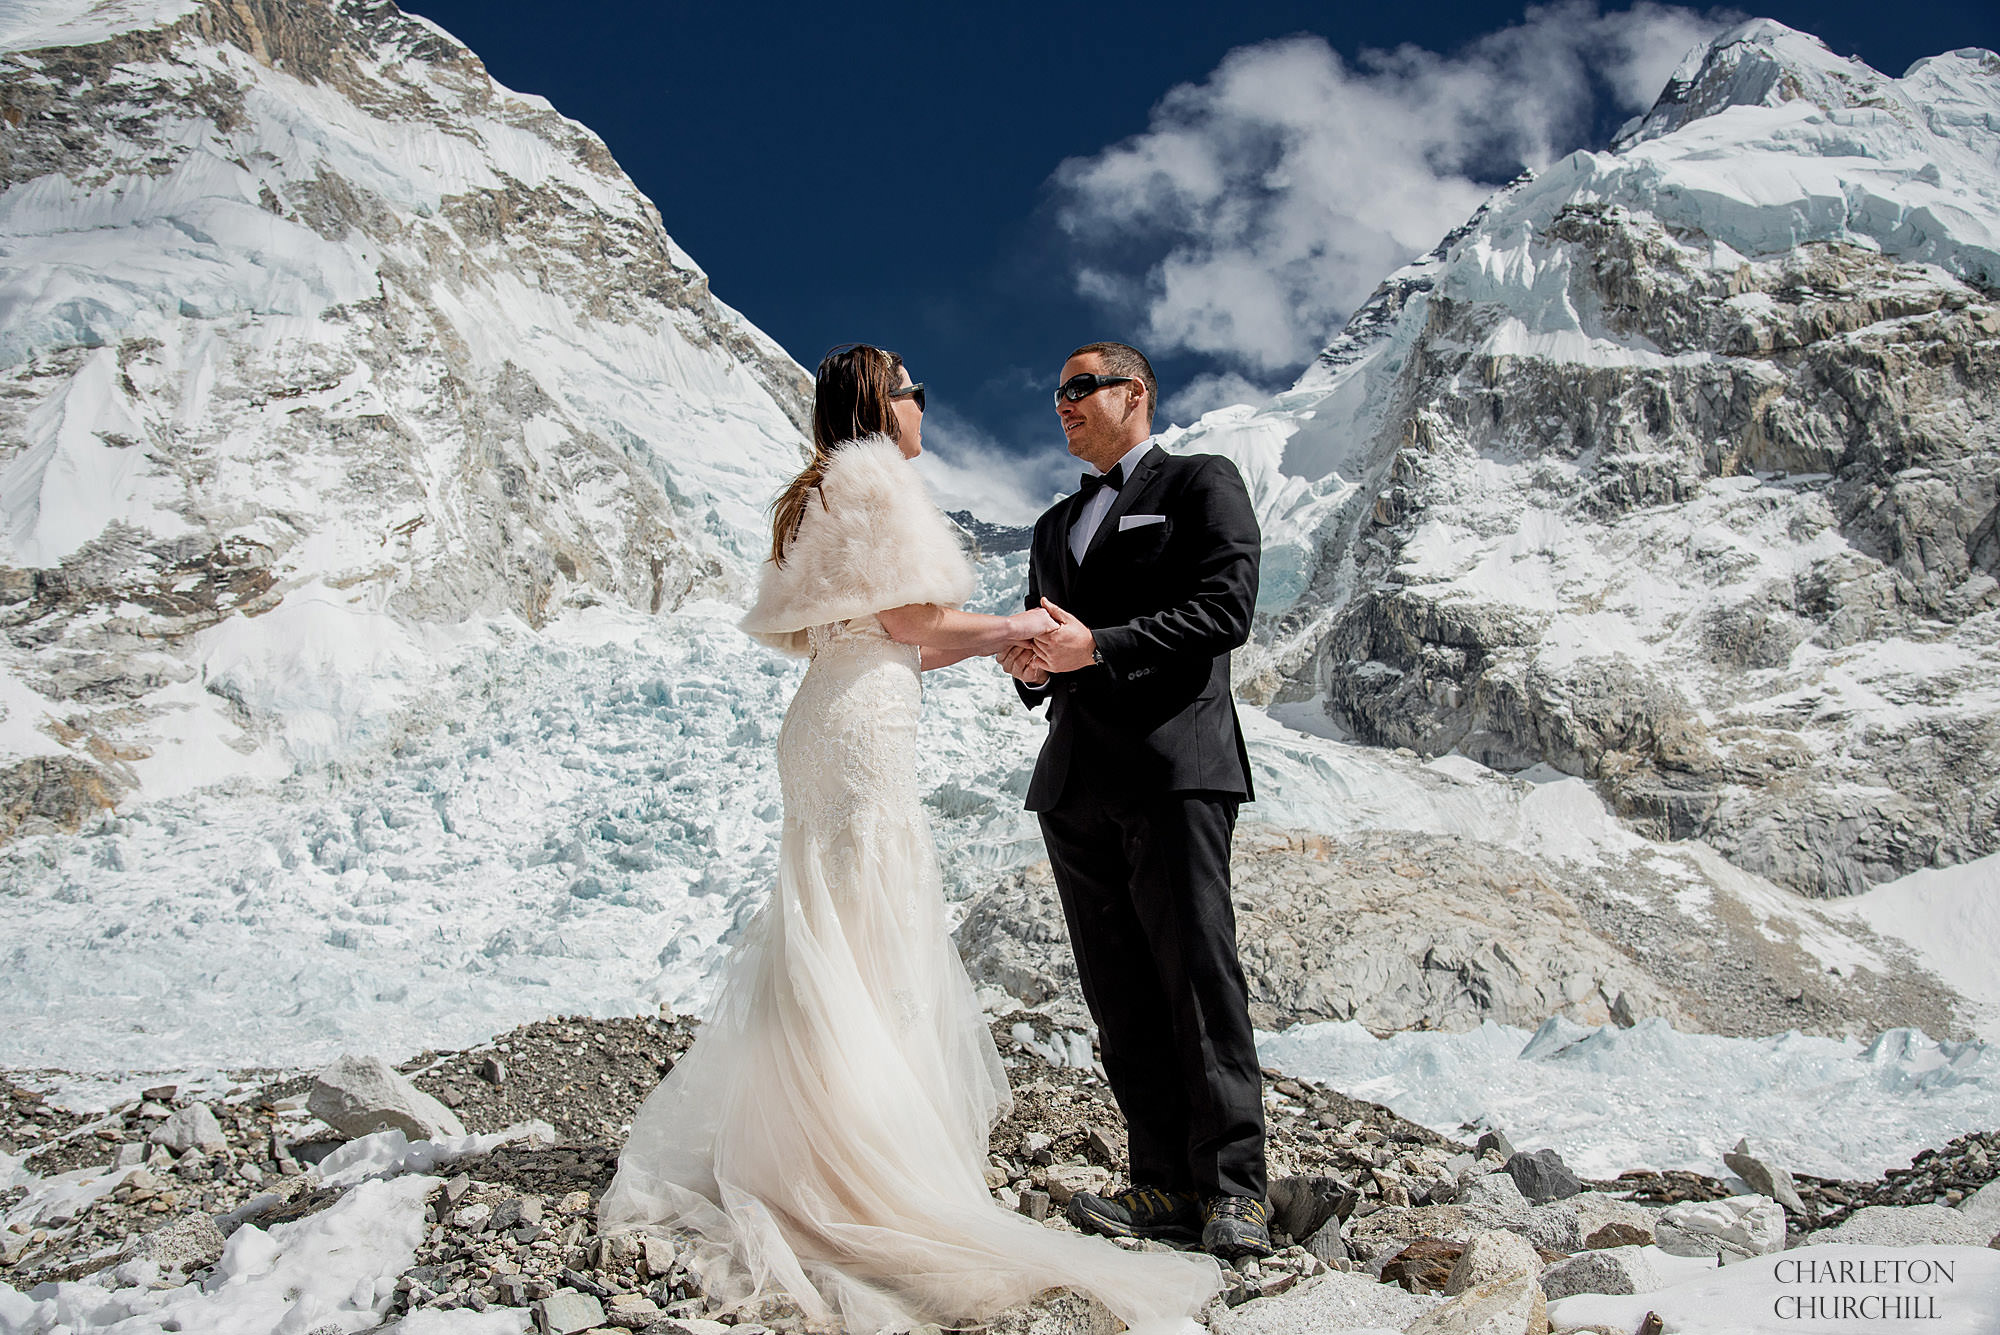 wedding ceremony at base camp of Mount Everest with a tuxedo and wedding dress and fur wrap